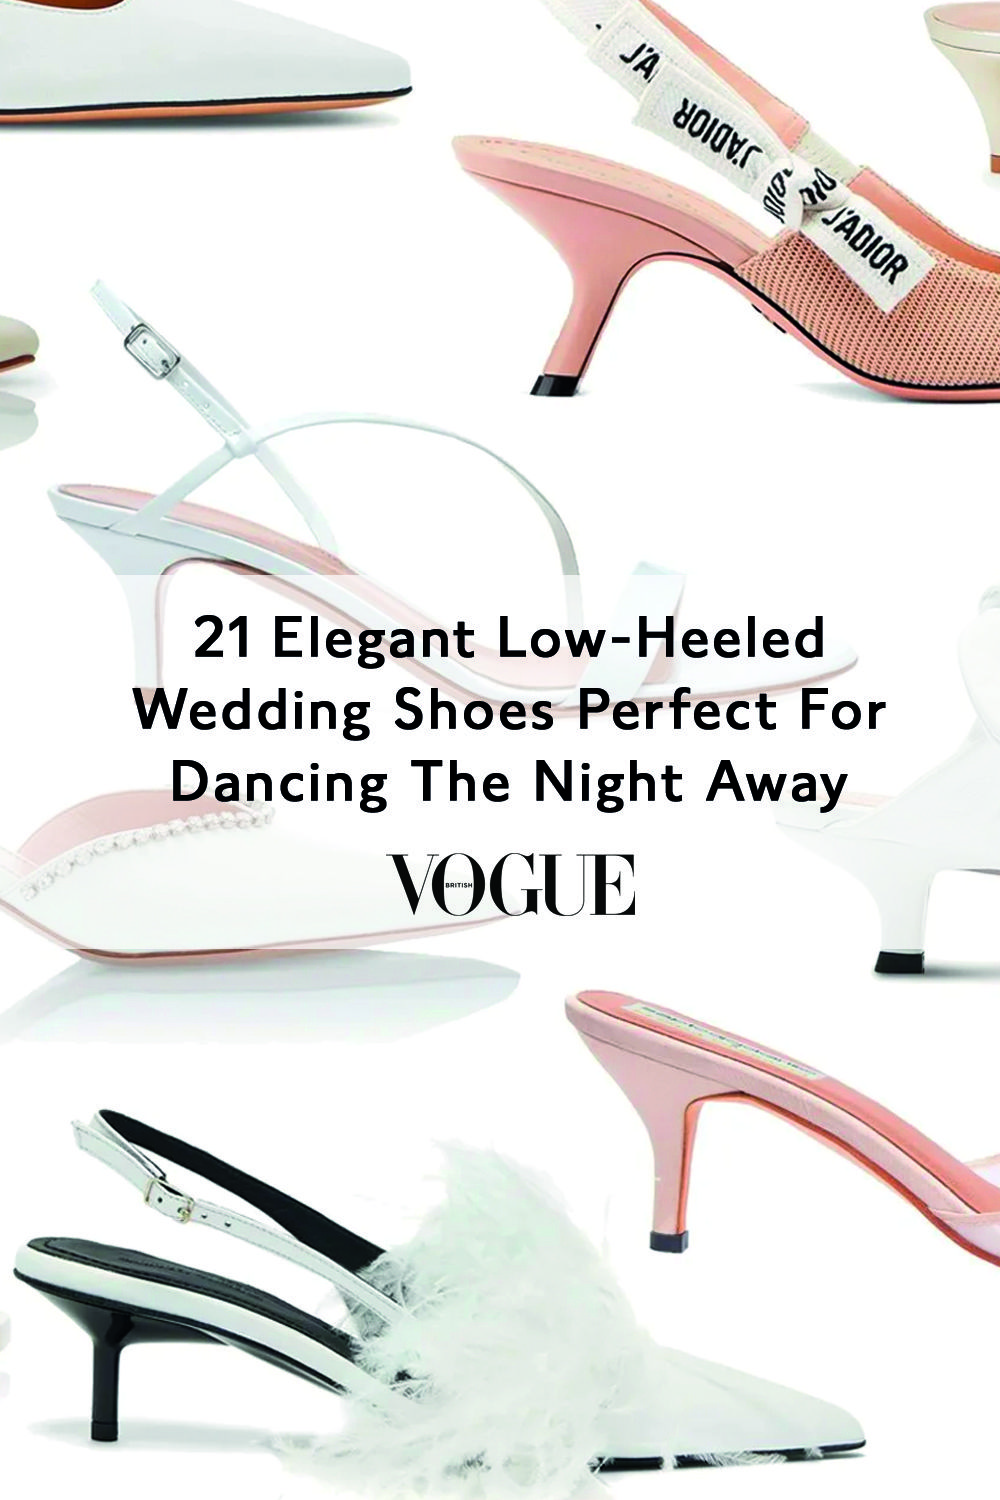 21 Elegant Low-Heeled Wedding Shoes Perfect For Dancing The Night Away